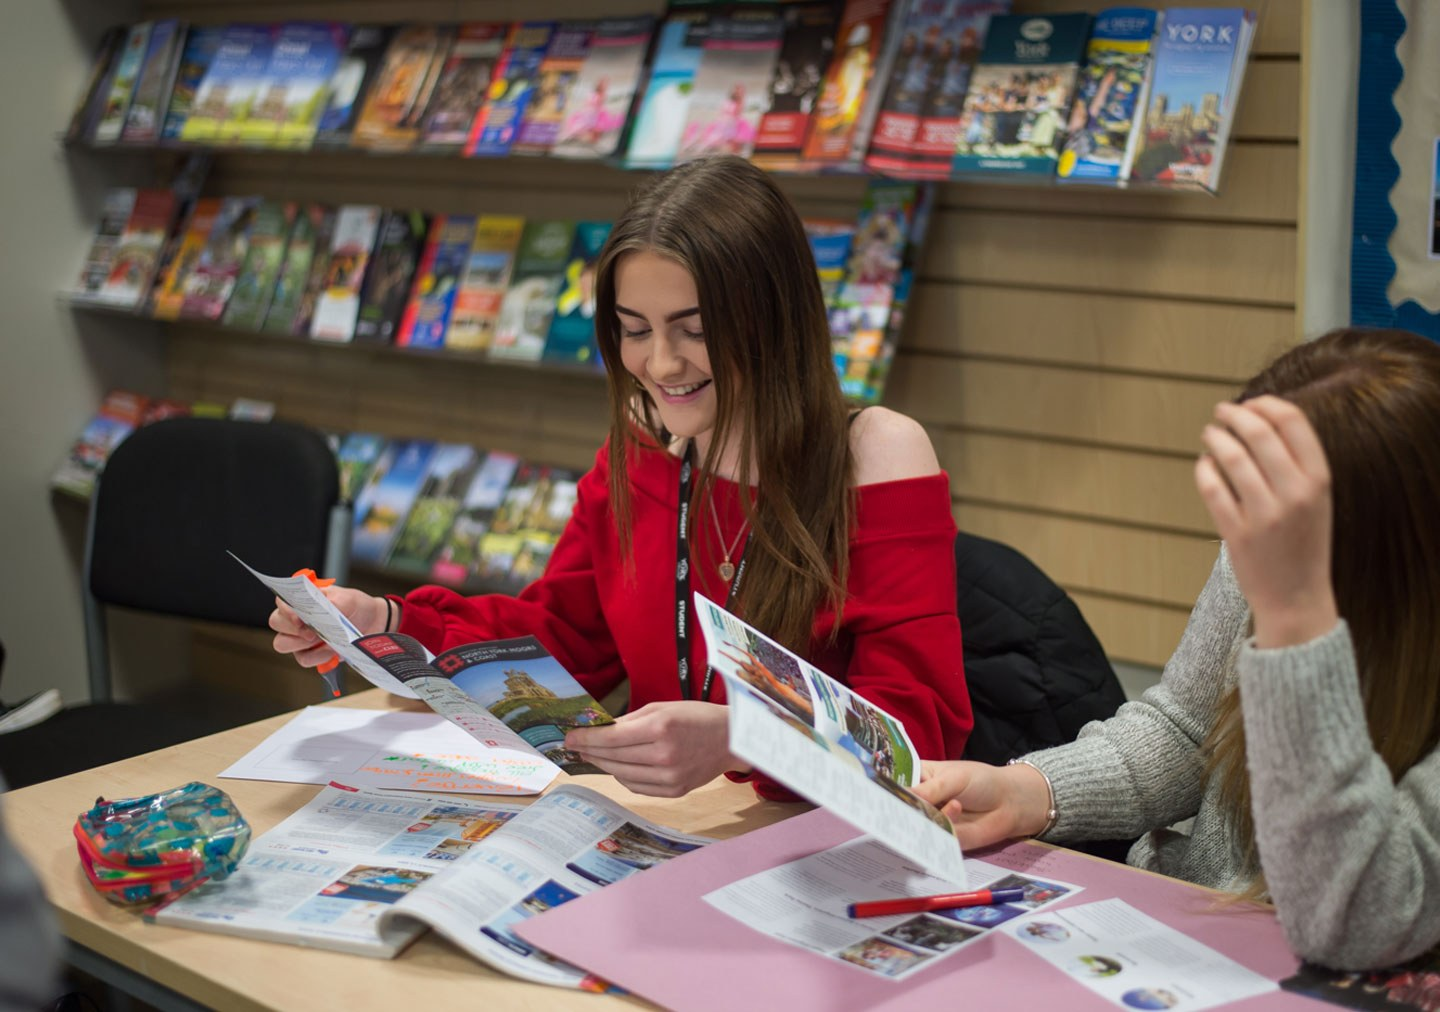 Travel and Tourism students working with travel brochures